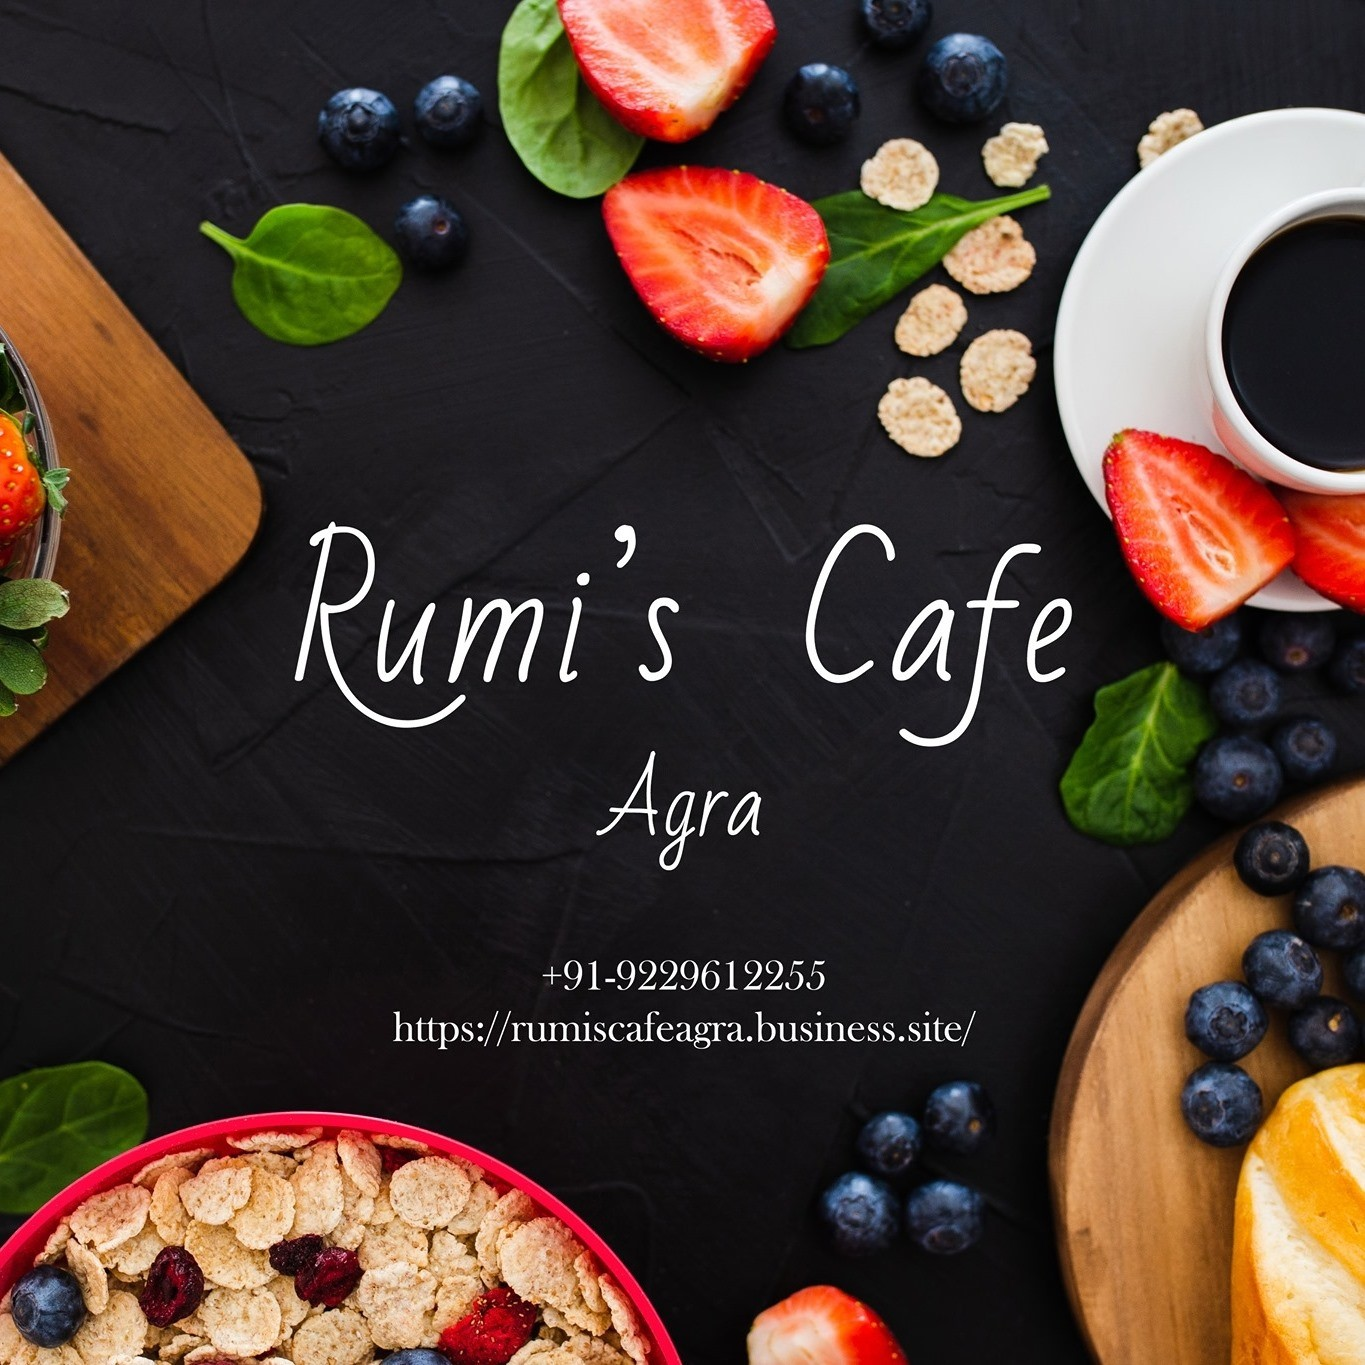 Rumi's Cafe